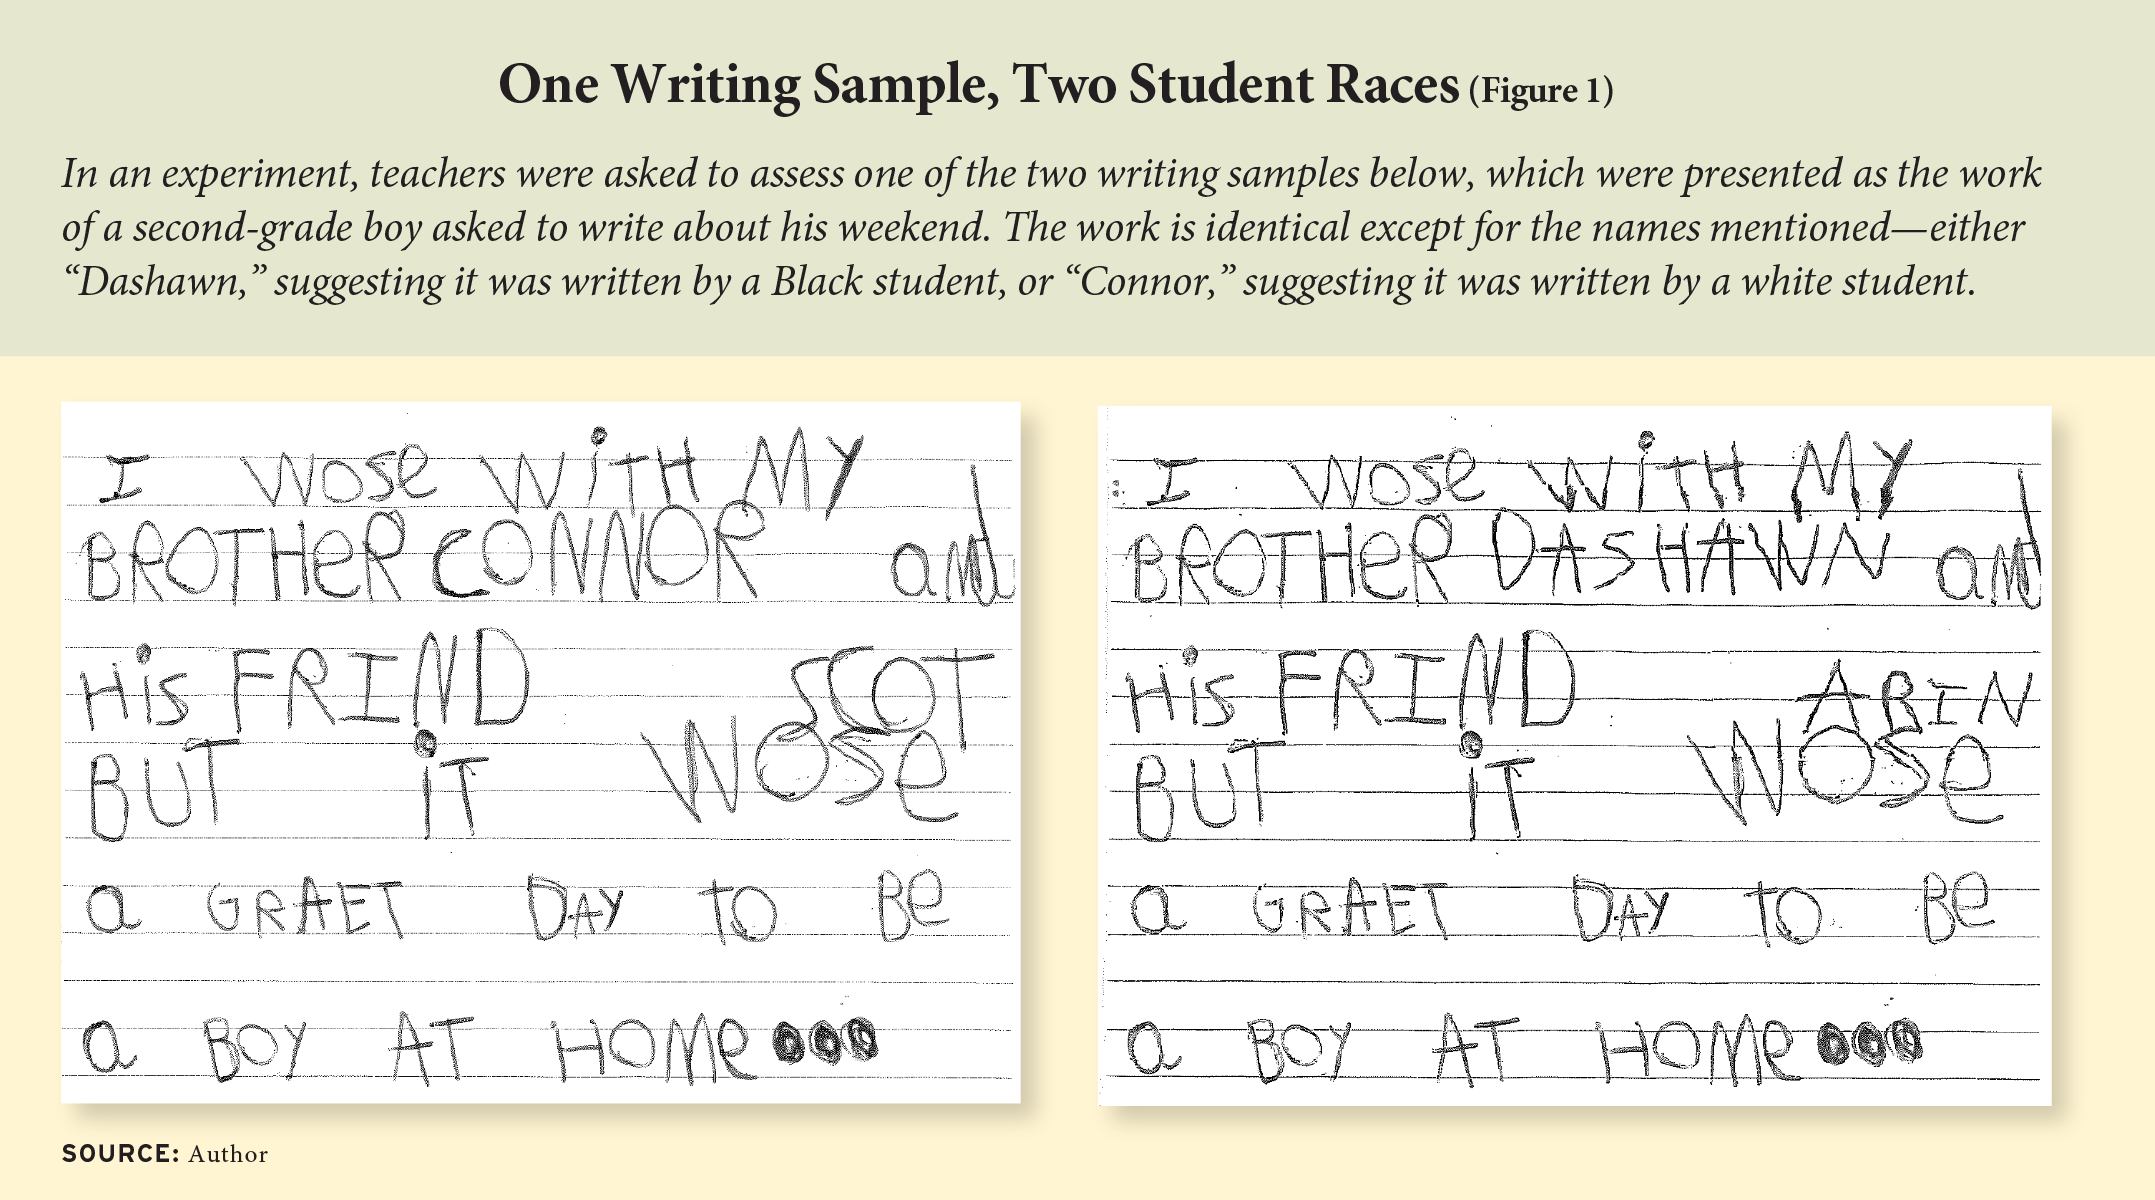 Figure 1: One Writing Sample, Two Student Races